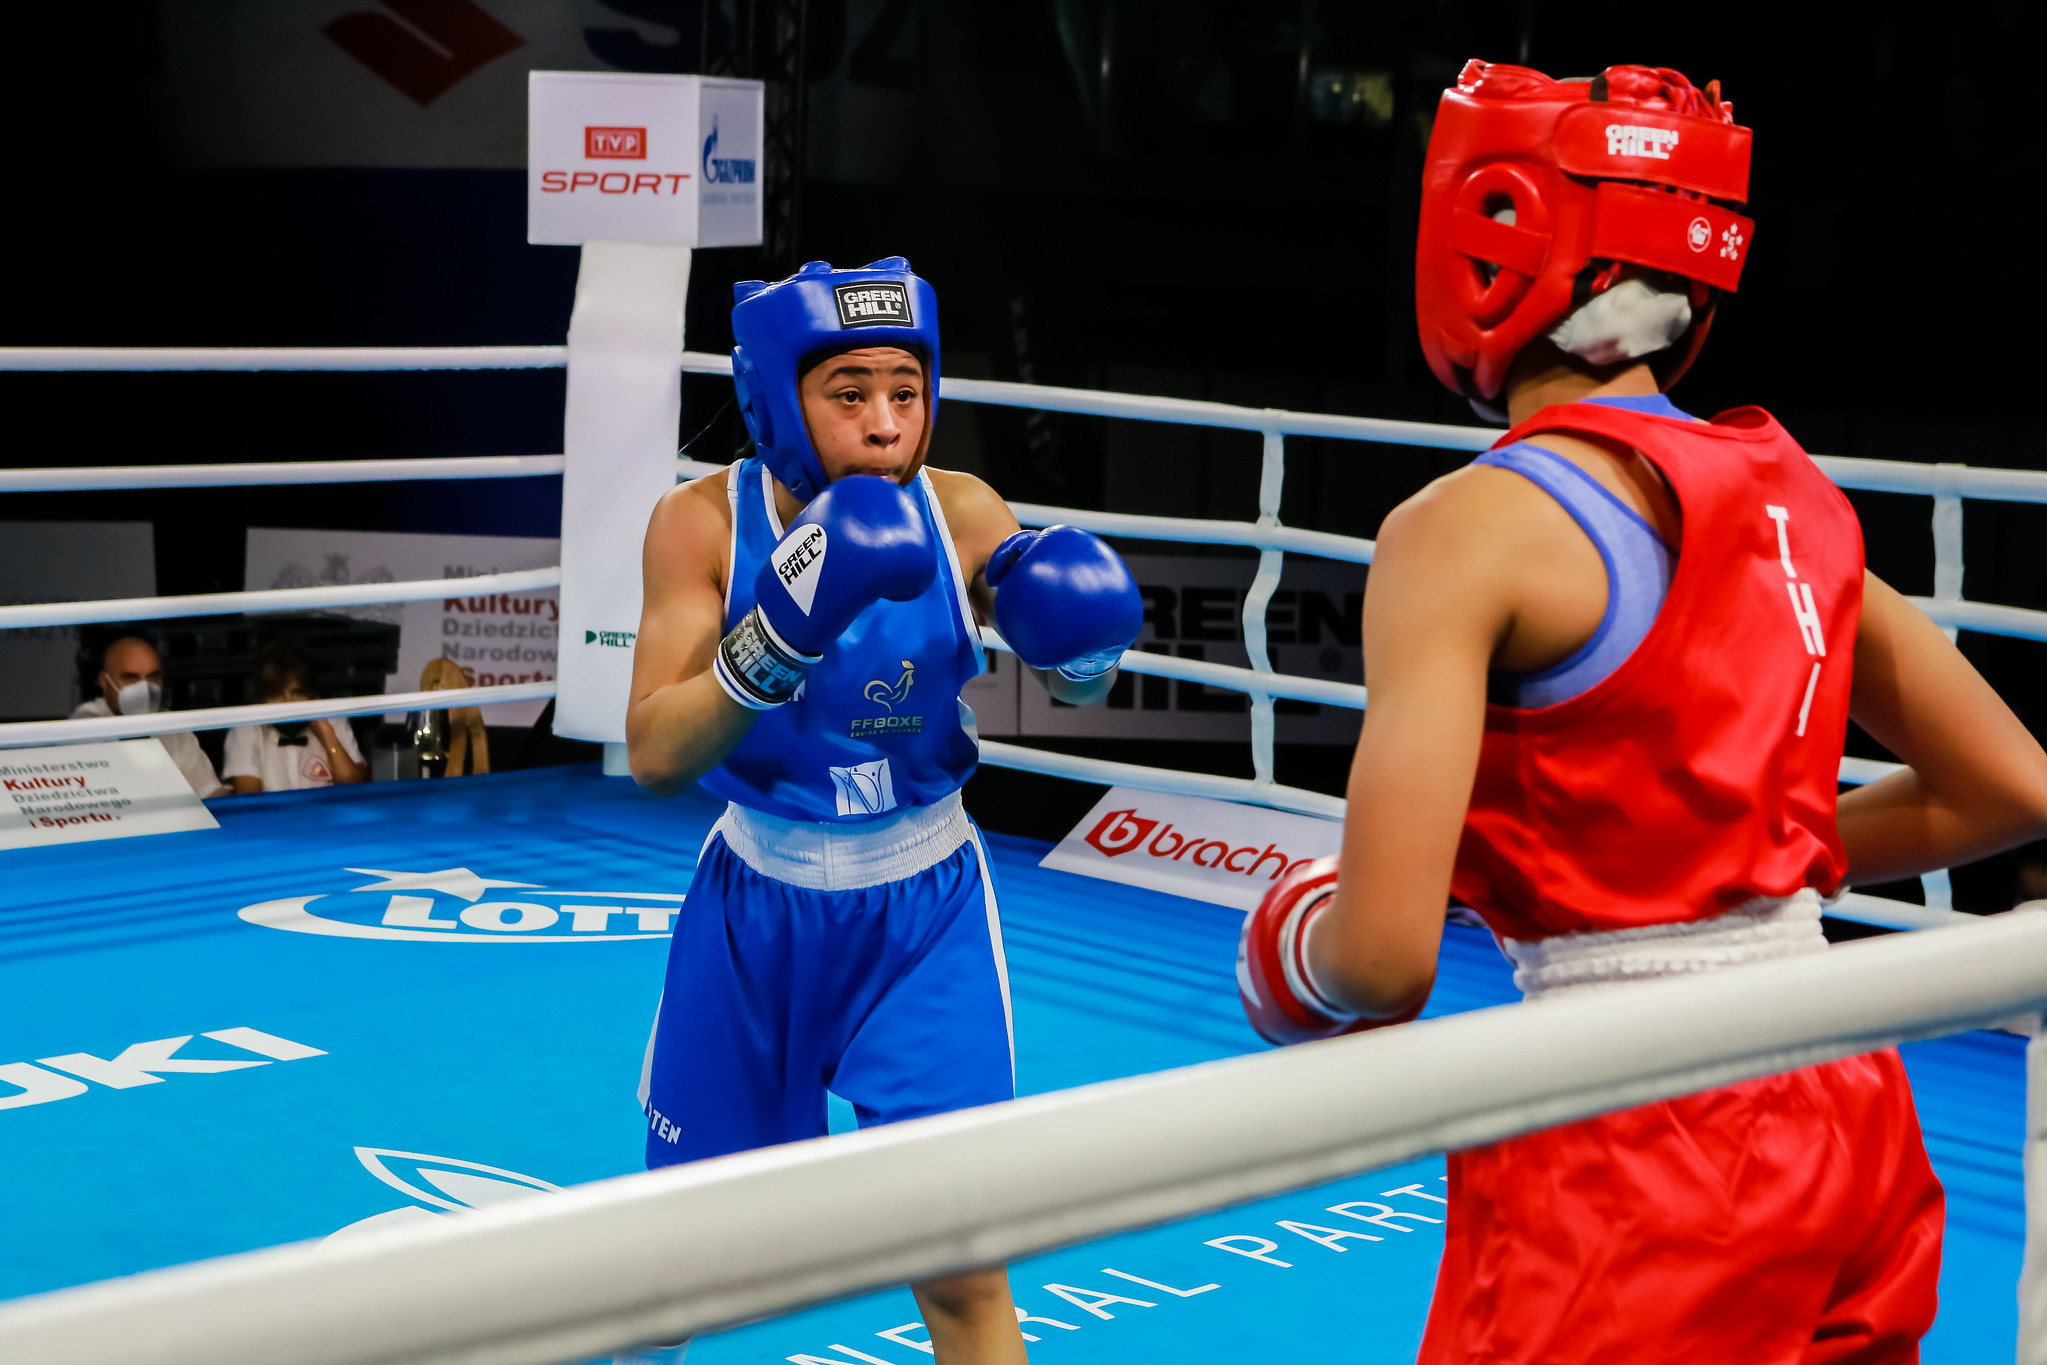 France's Sthelyne Grosy, in blue, reached the women's featherweight final in convincing fashion ©AIBA